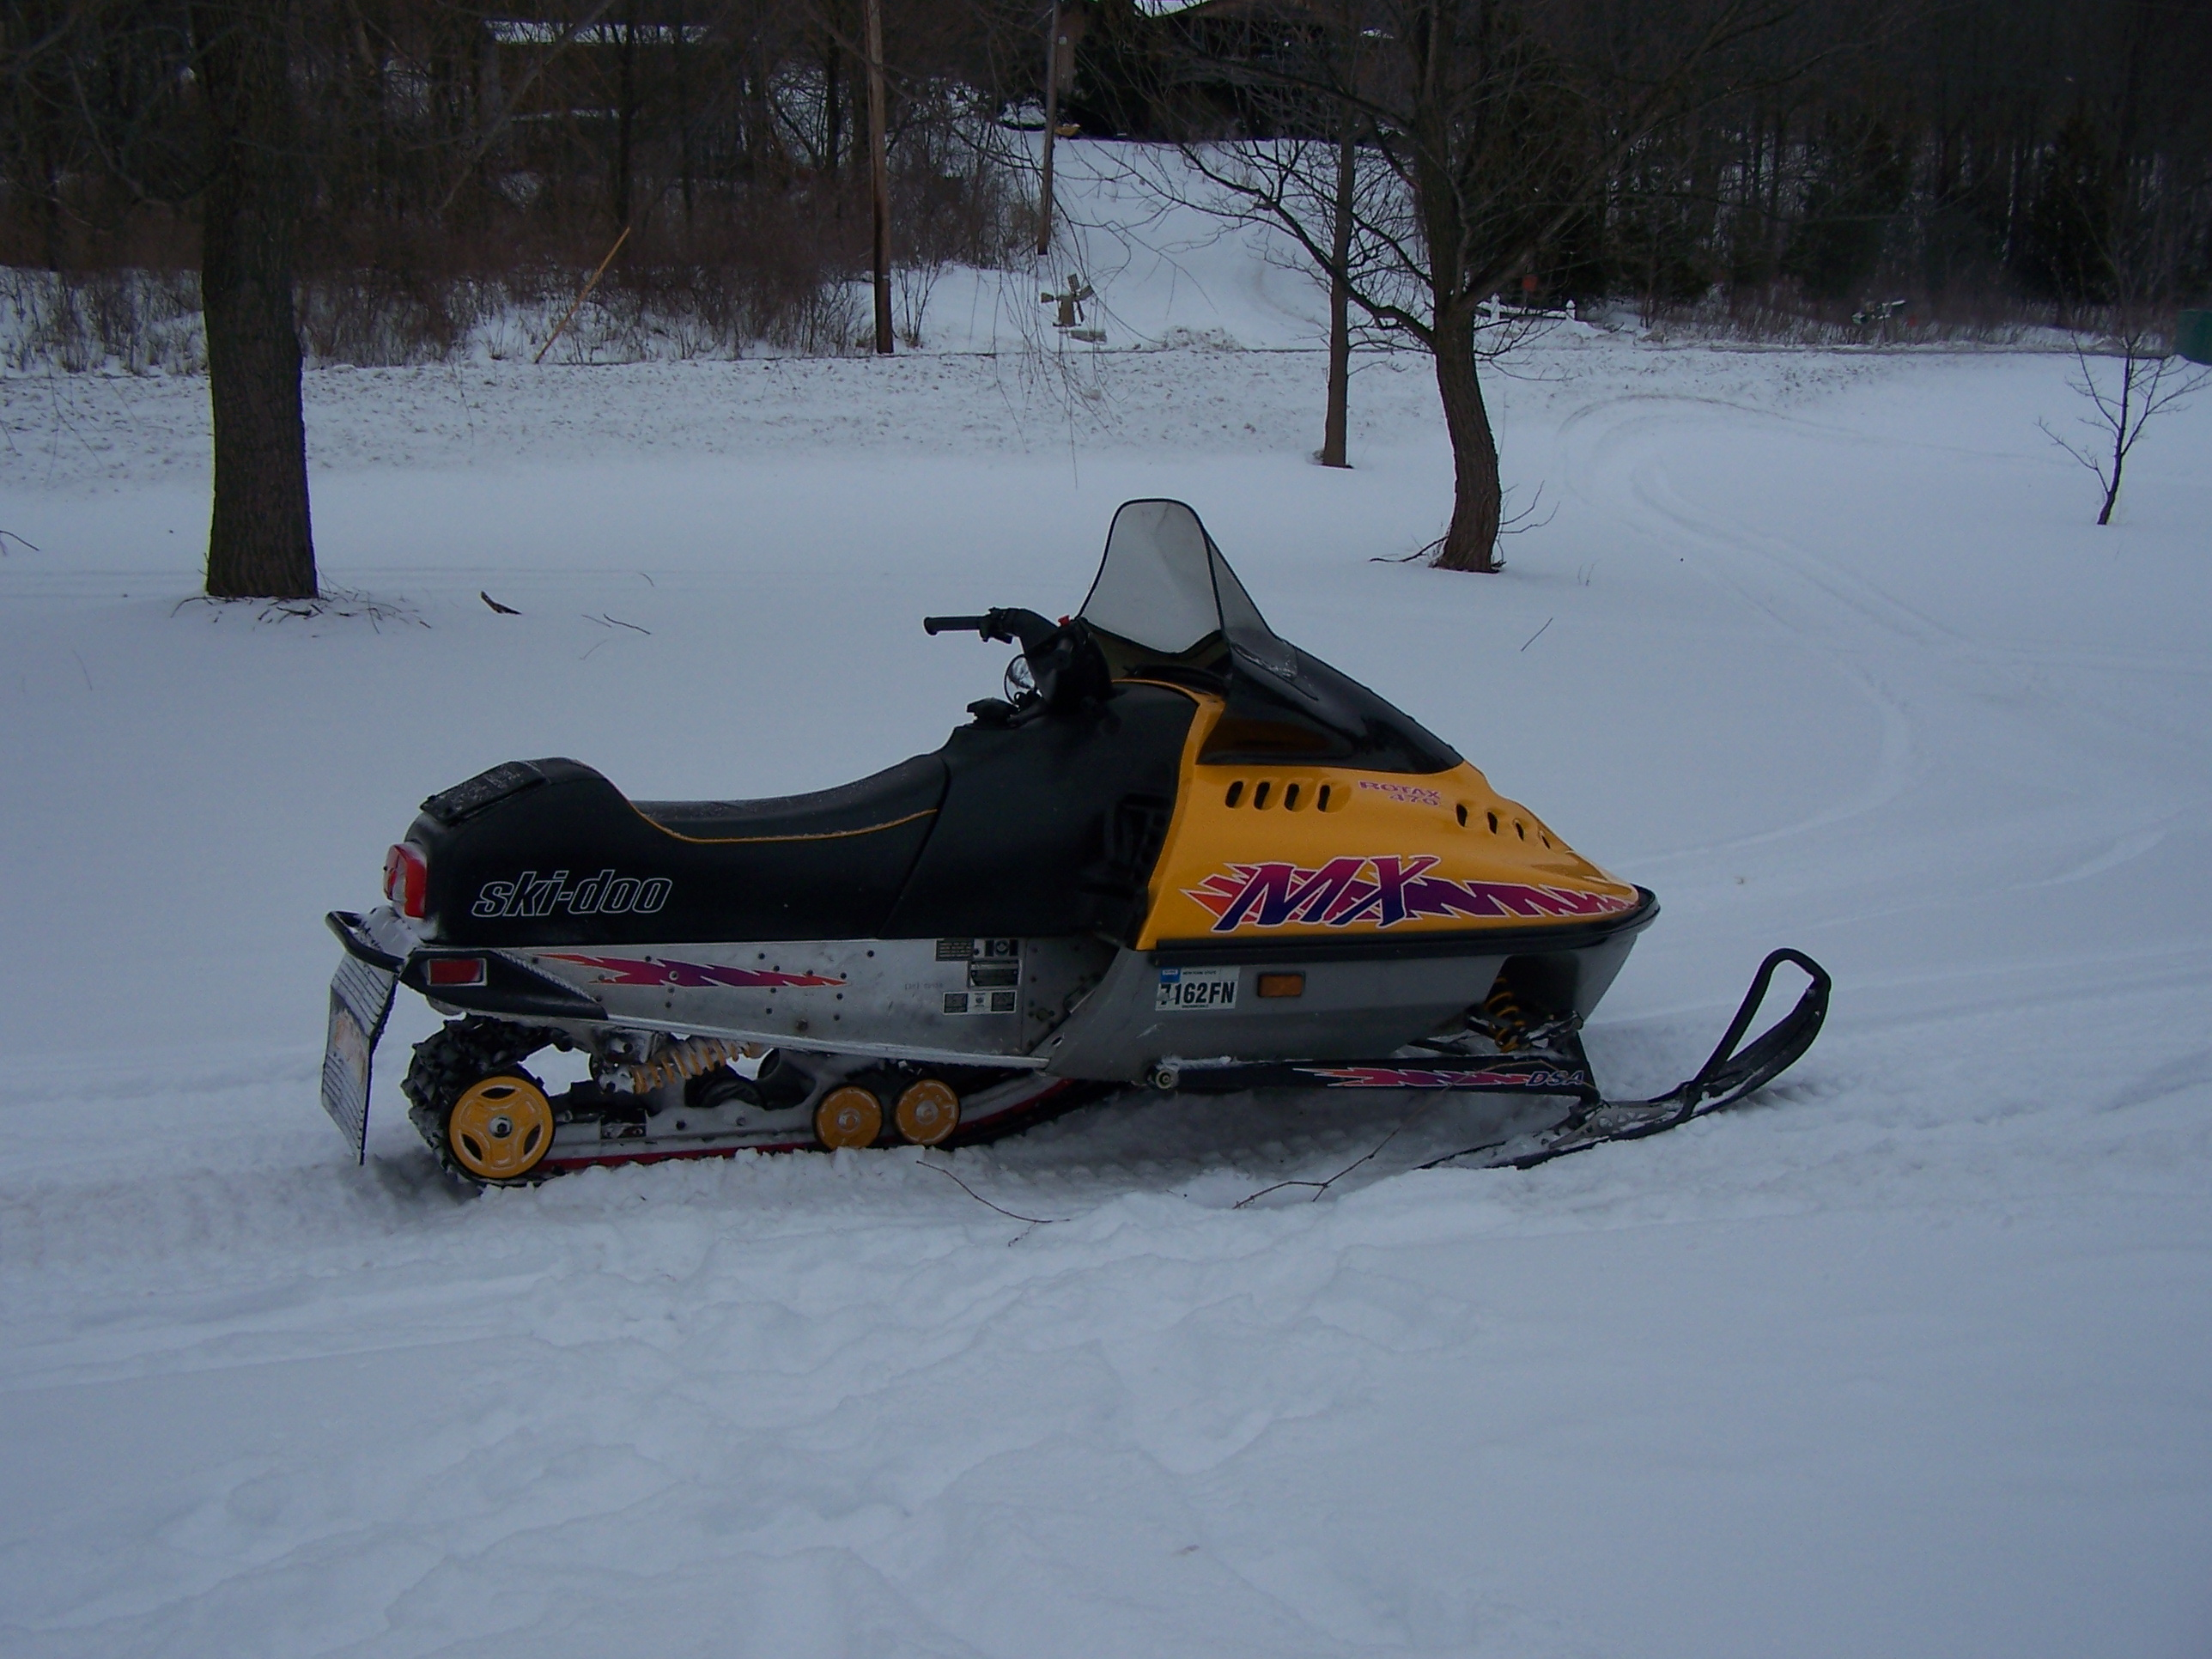 ski doo snowmobile parts diagram taotao 50cc wiring polaris diagrams 1989 ranger 700